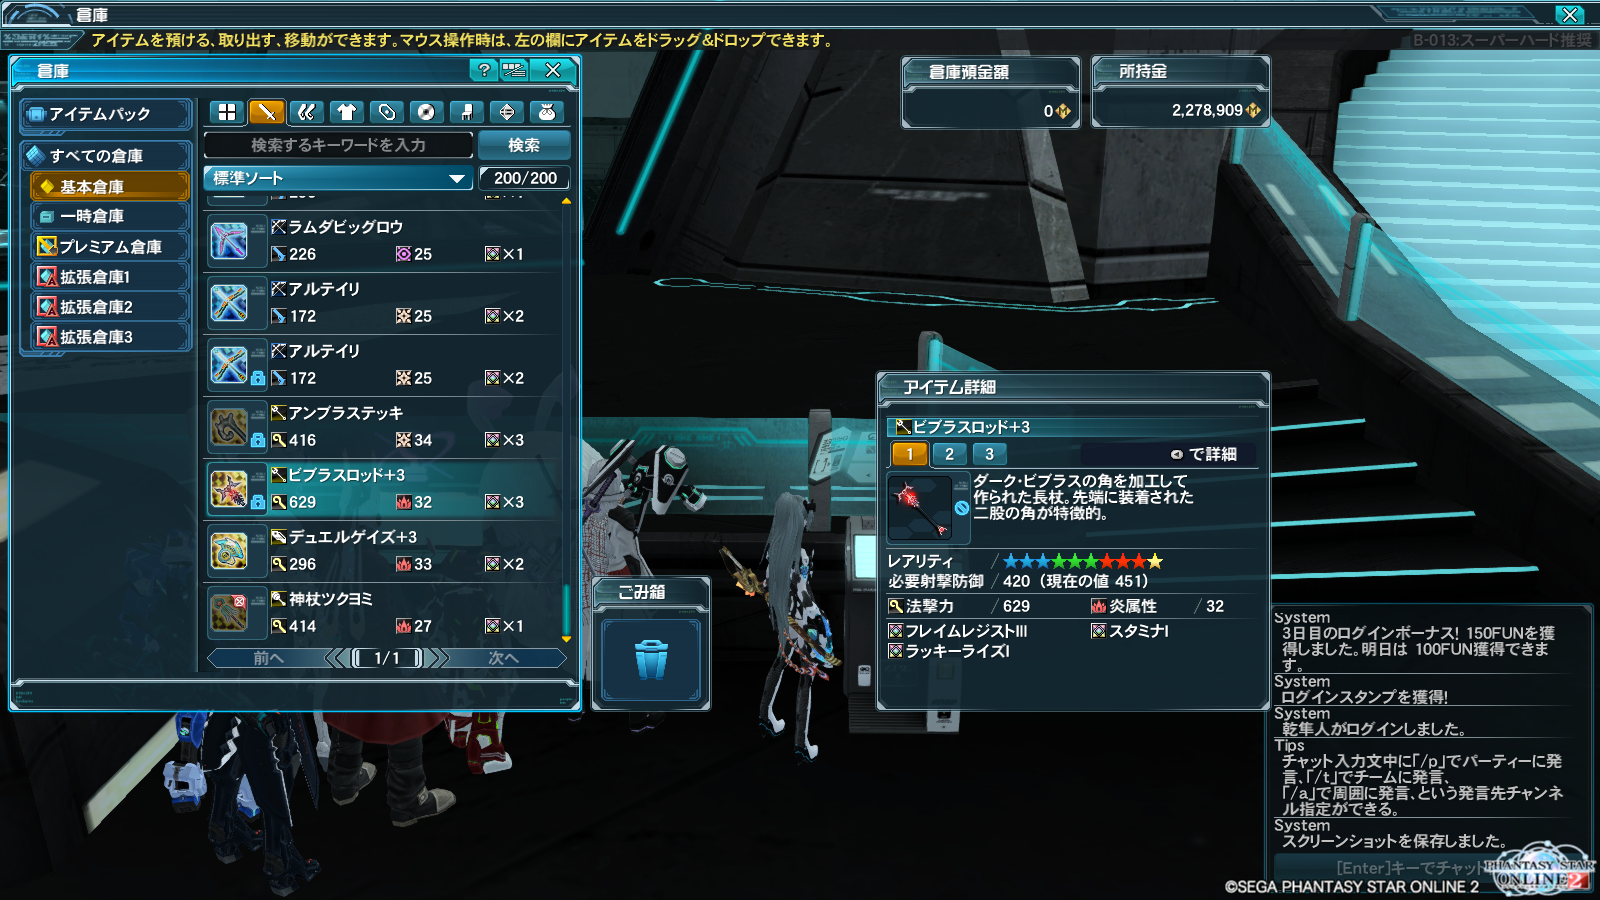 pso20131220_135006_000.png